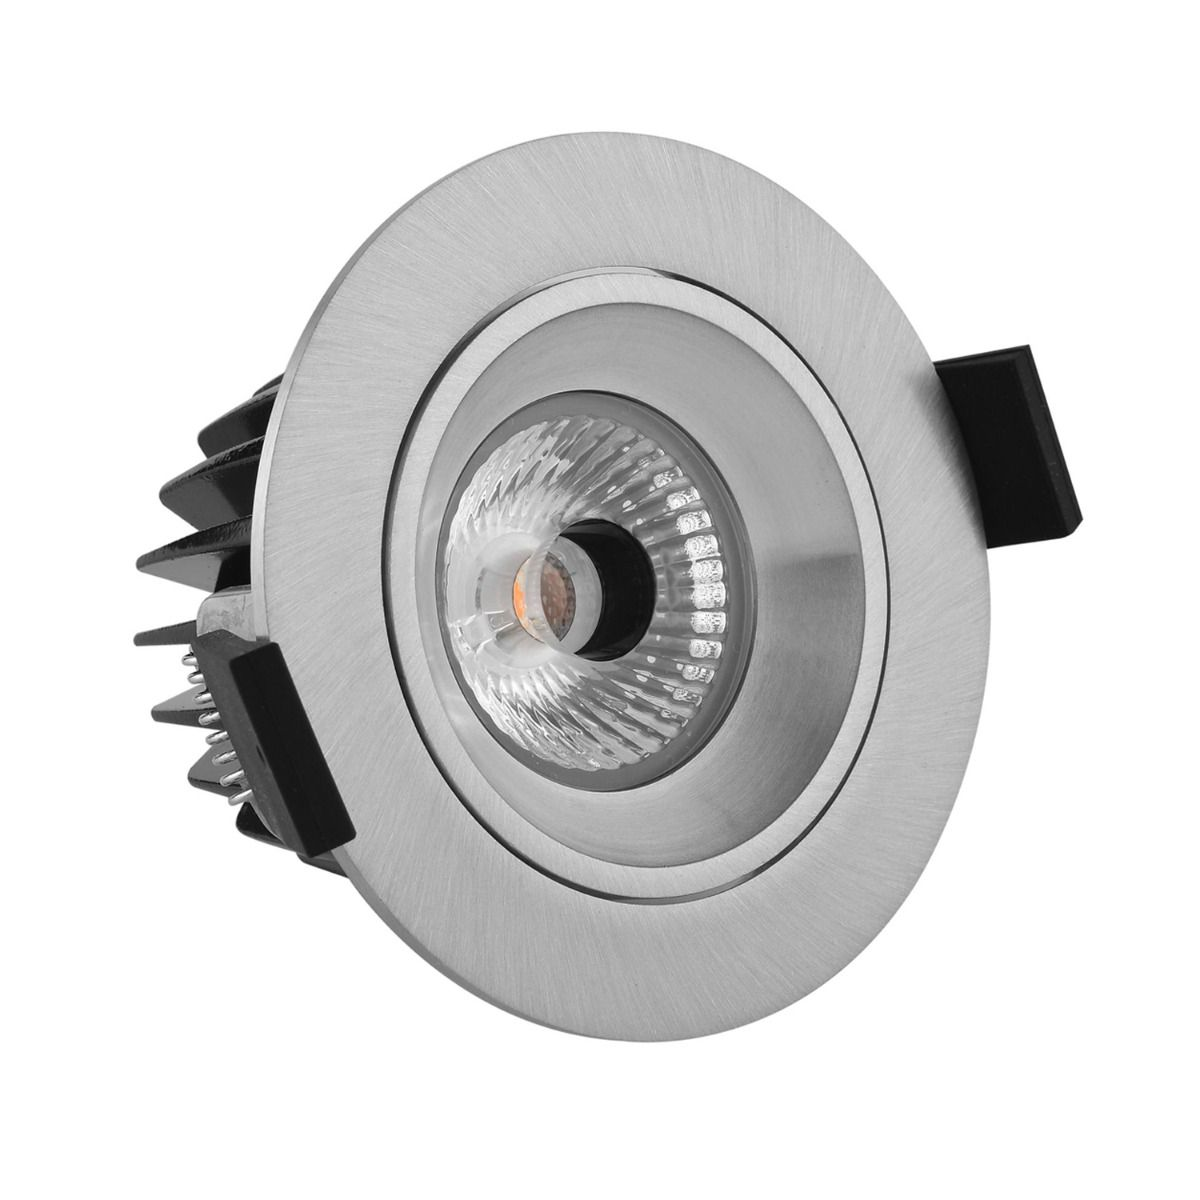 Noxion LED Spot Diamond IP44 2700K Aluminium | Dimbaar